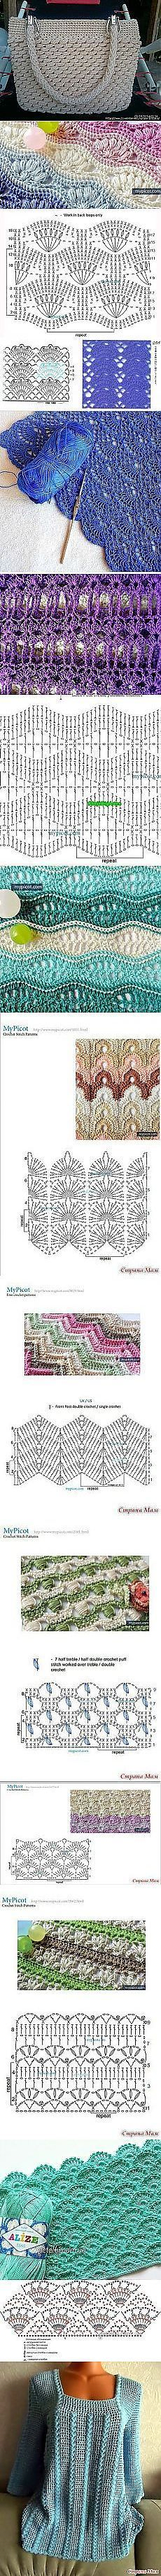 Discover thousands of images about Buscar Postile: patrones de ganchillo Crotchet Patterns, Crochet Motifs, Crochet Tote, Crochet Diagram, Crochet Stitches Patterns, Crochet Handbags, Crochet Purses, Crochet Chart, Crochet Doilies